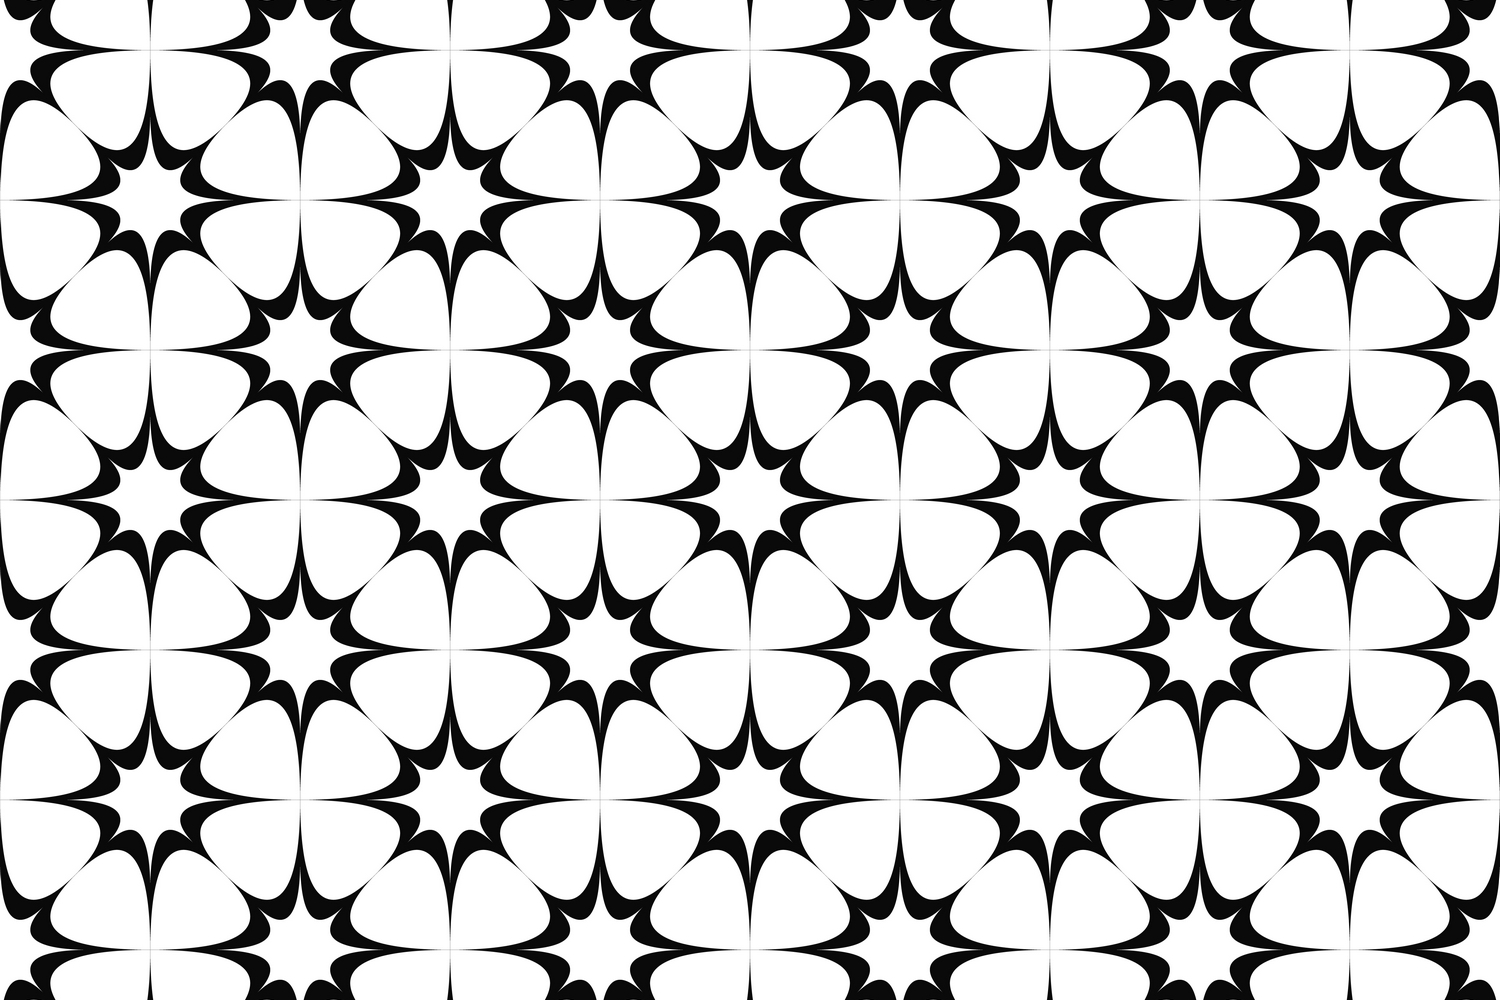 75 Monochrome Geometrical Patterns AI, EPS, JPG 5000x5000 example image 14